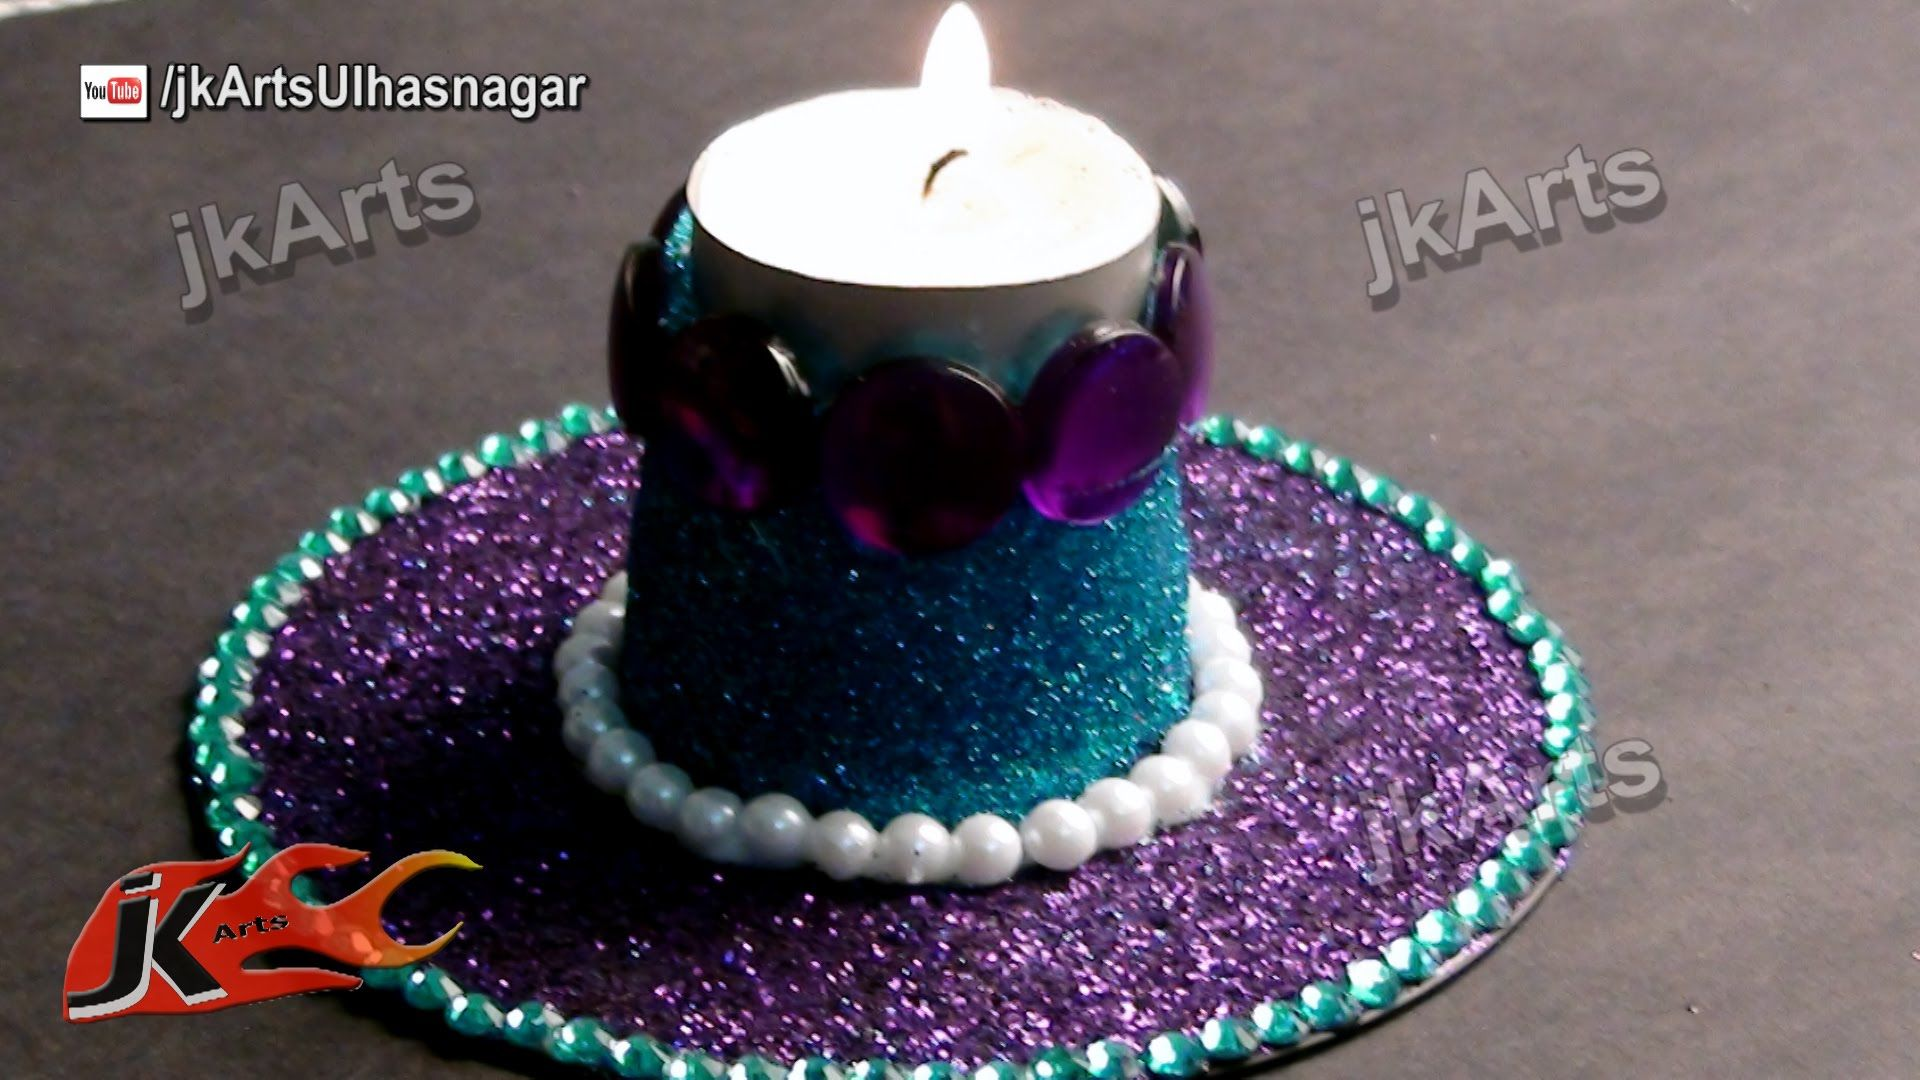 Diy Glitter Candle Holder Best Out Of Waste Dvd And Plastic Glass Jk Arts 409 Glitter Candles Diy Glitter Candles Glitter Candle Holders